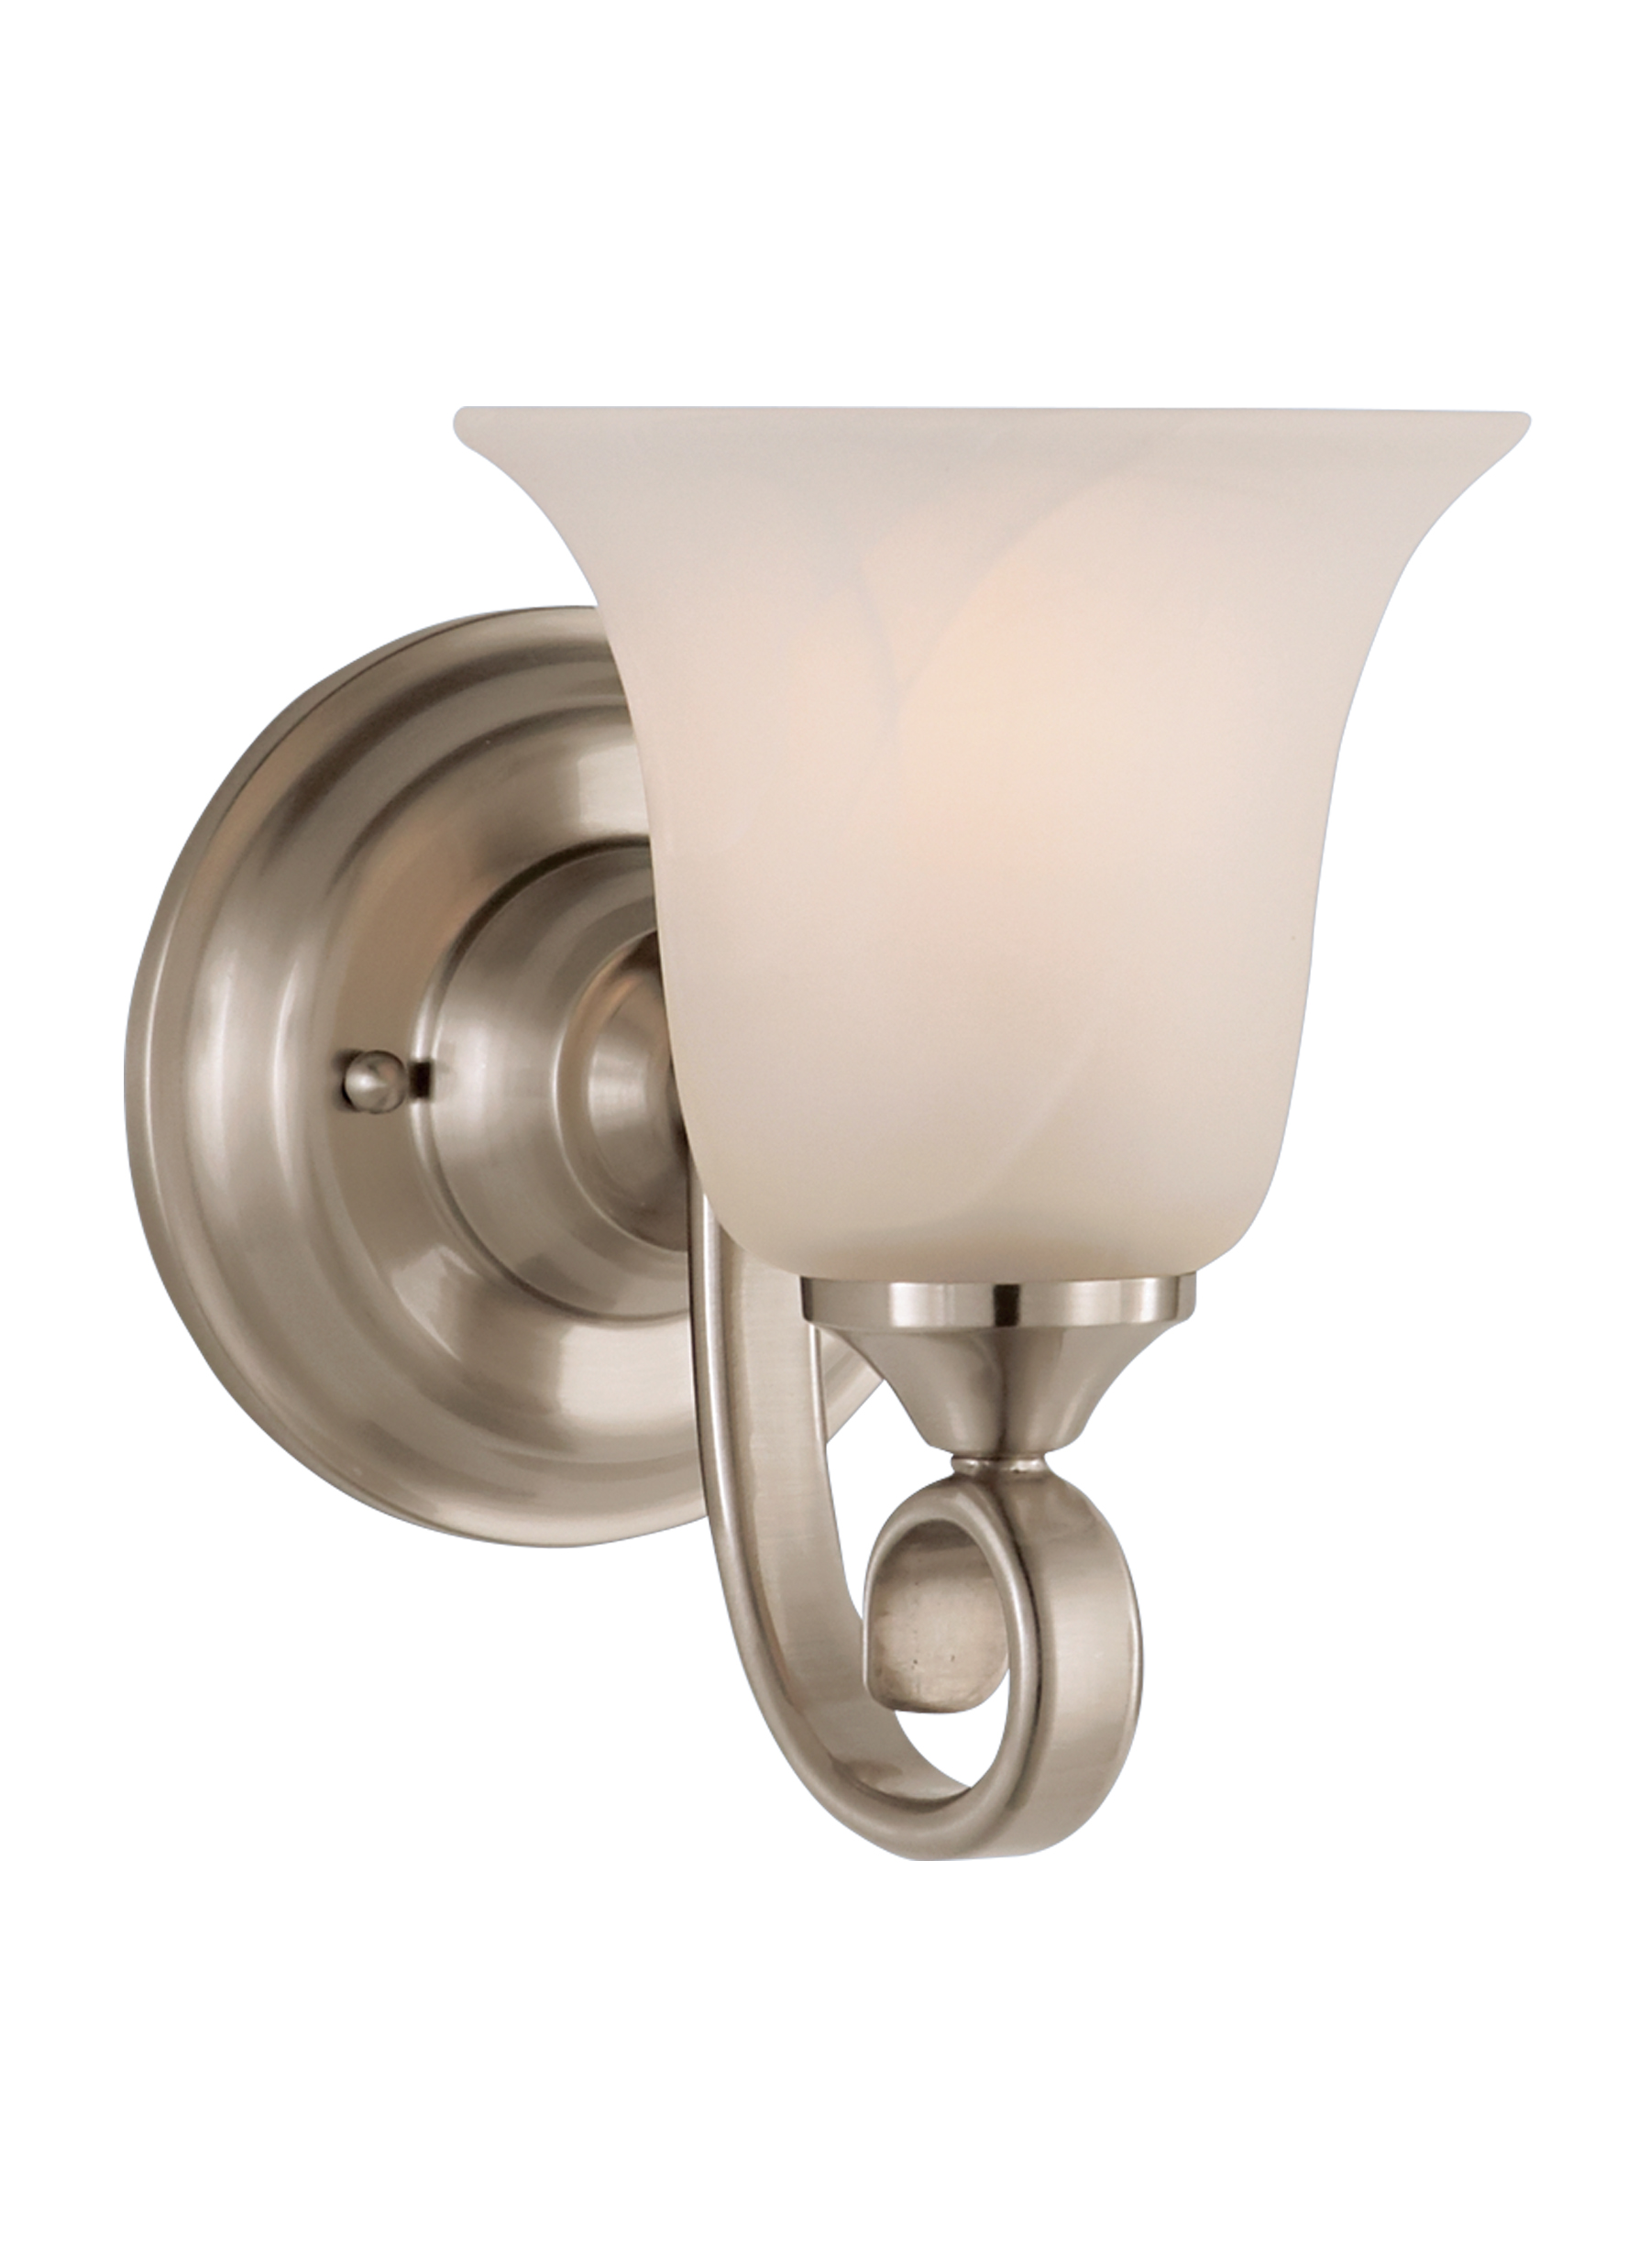 VS BS 1 Light Vanity Fixture Brushed Steel